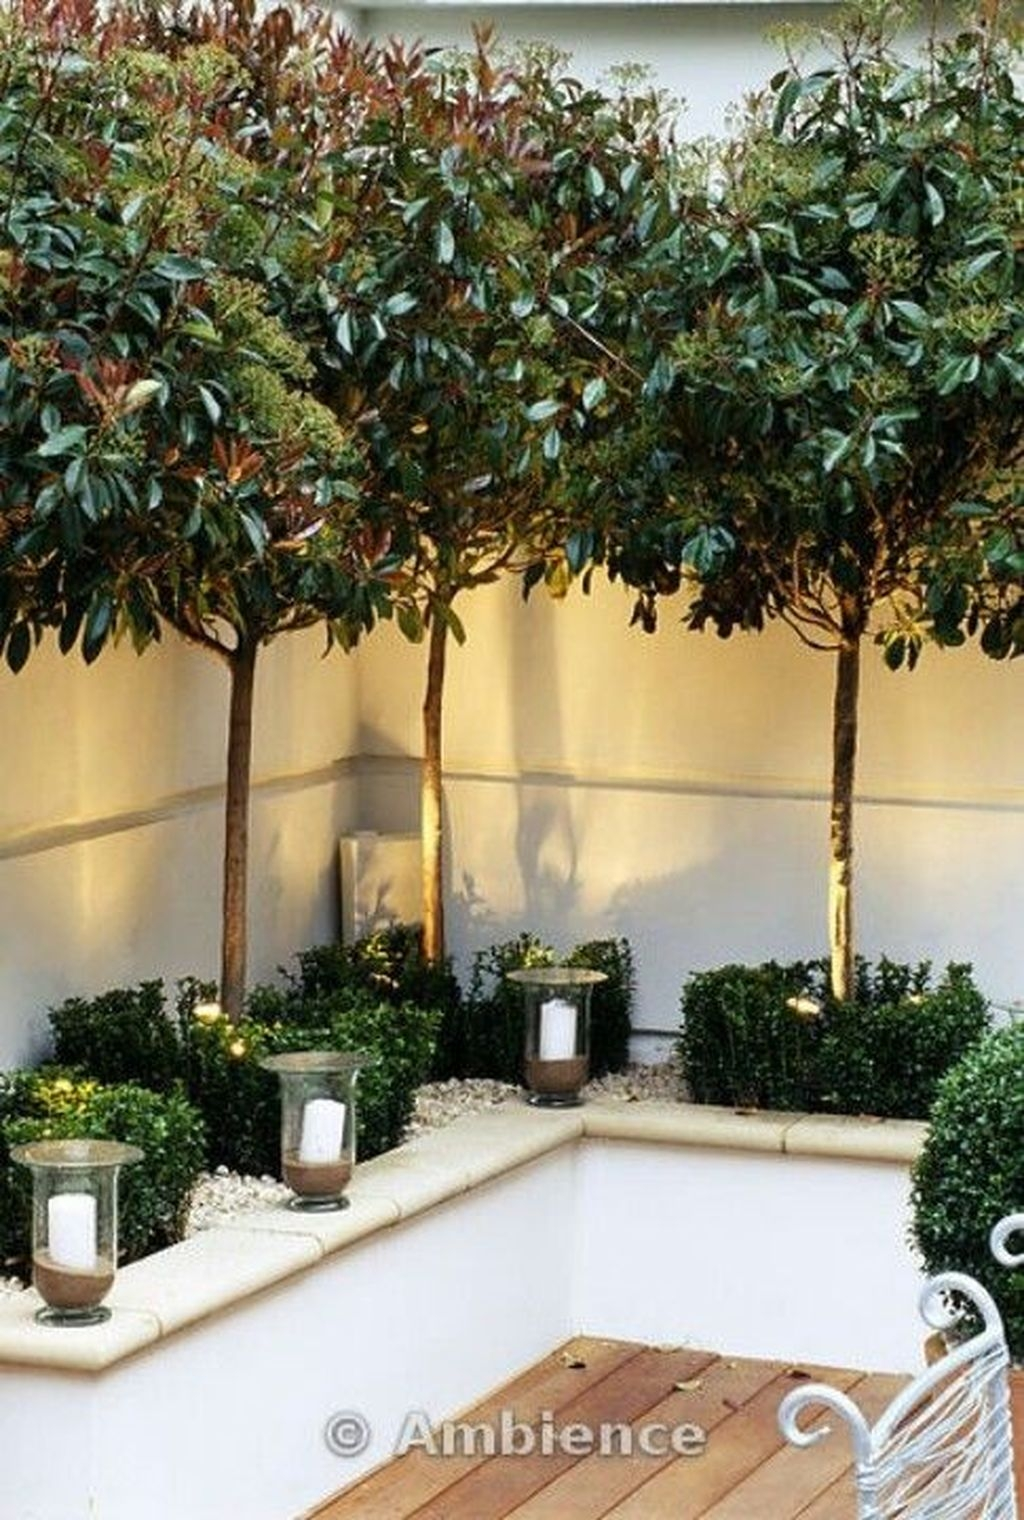 Stylish Backyard Landscaping Ideas For Your Dream House36